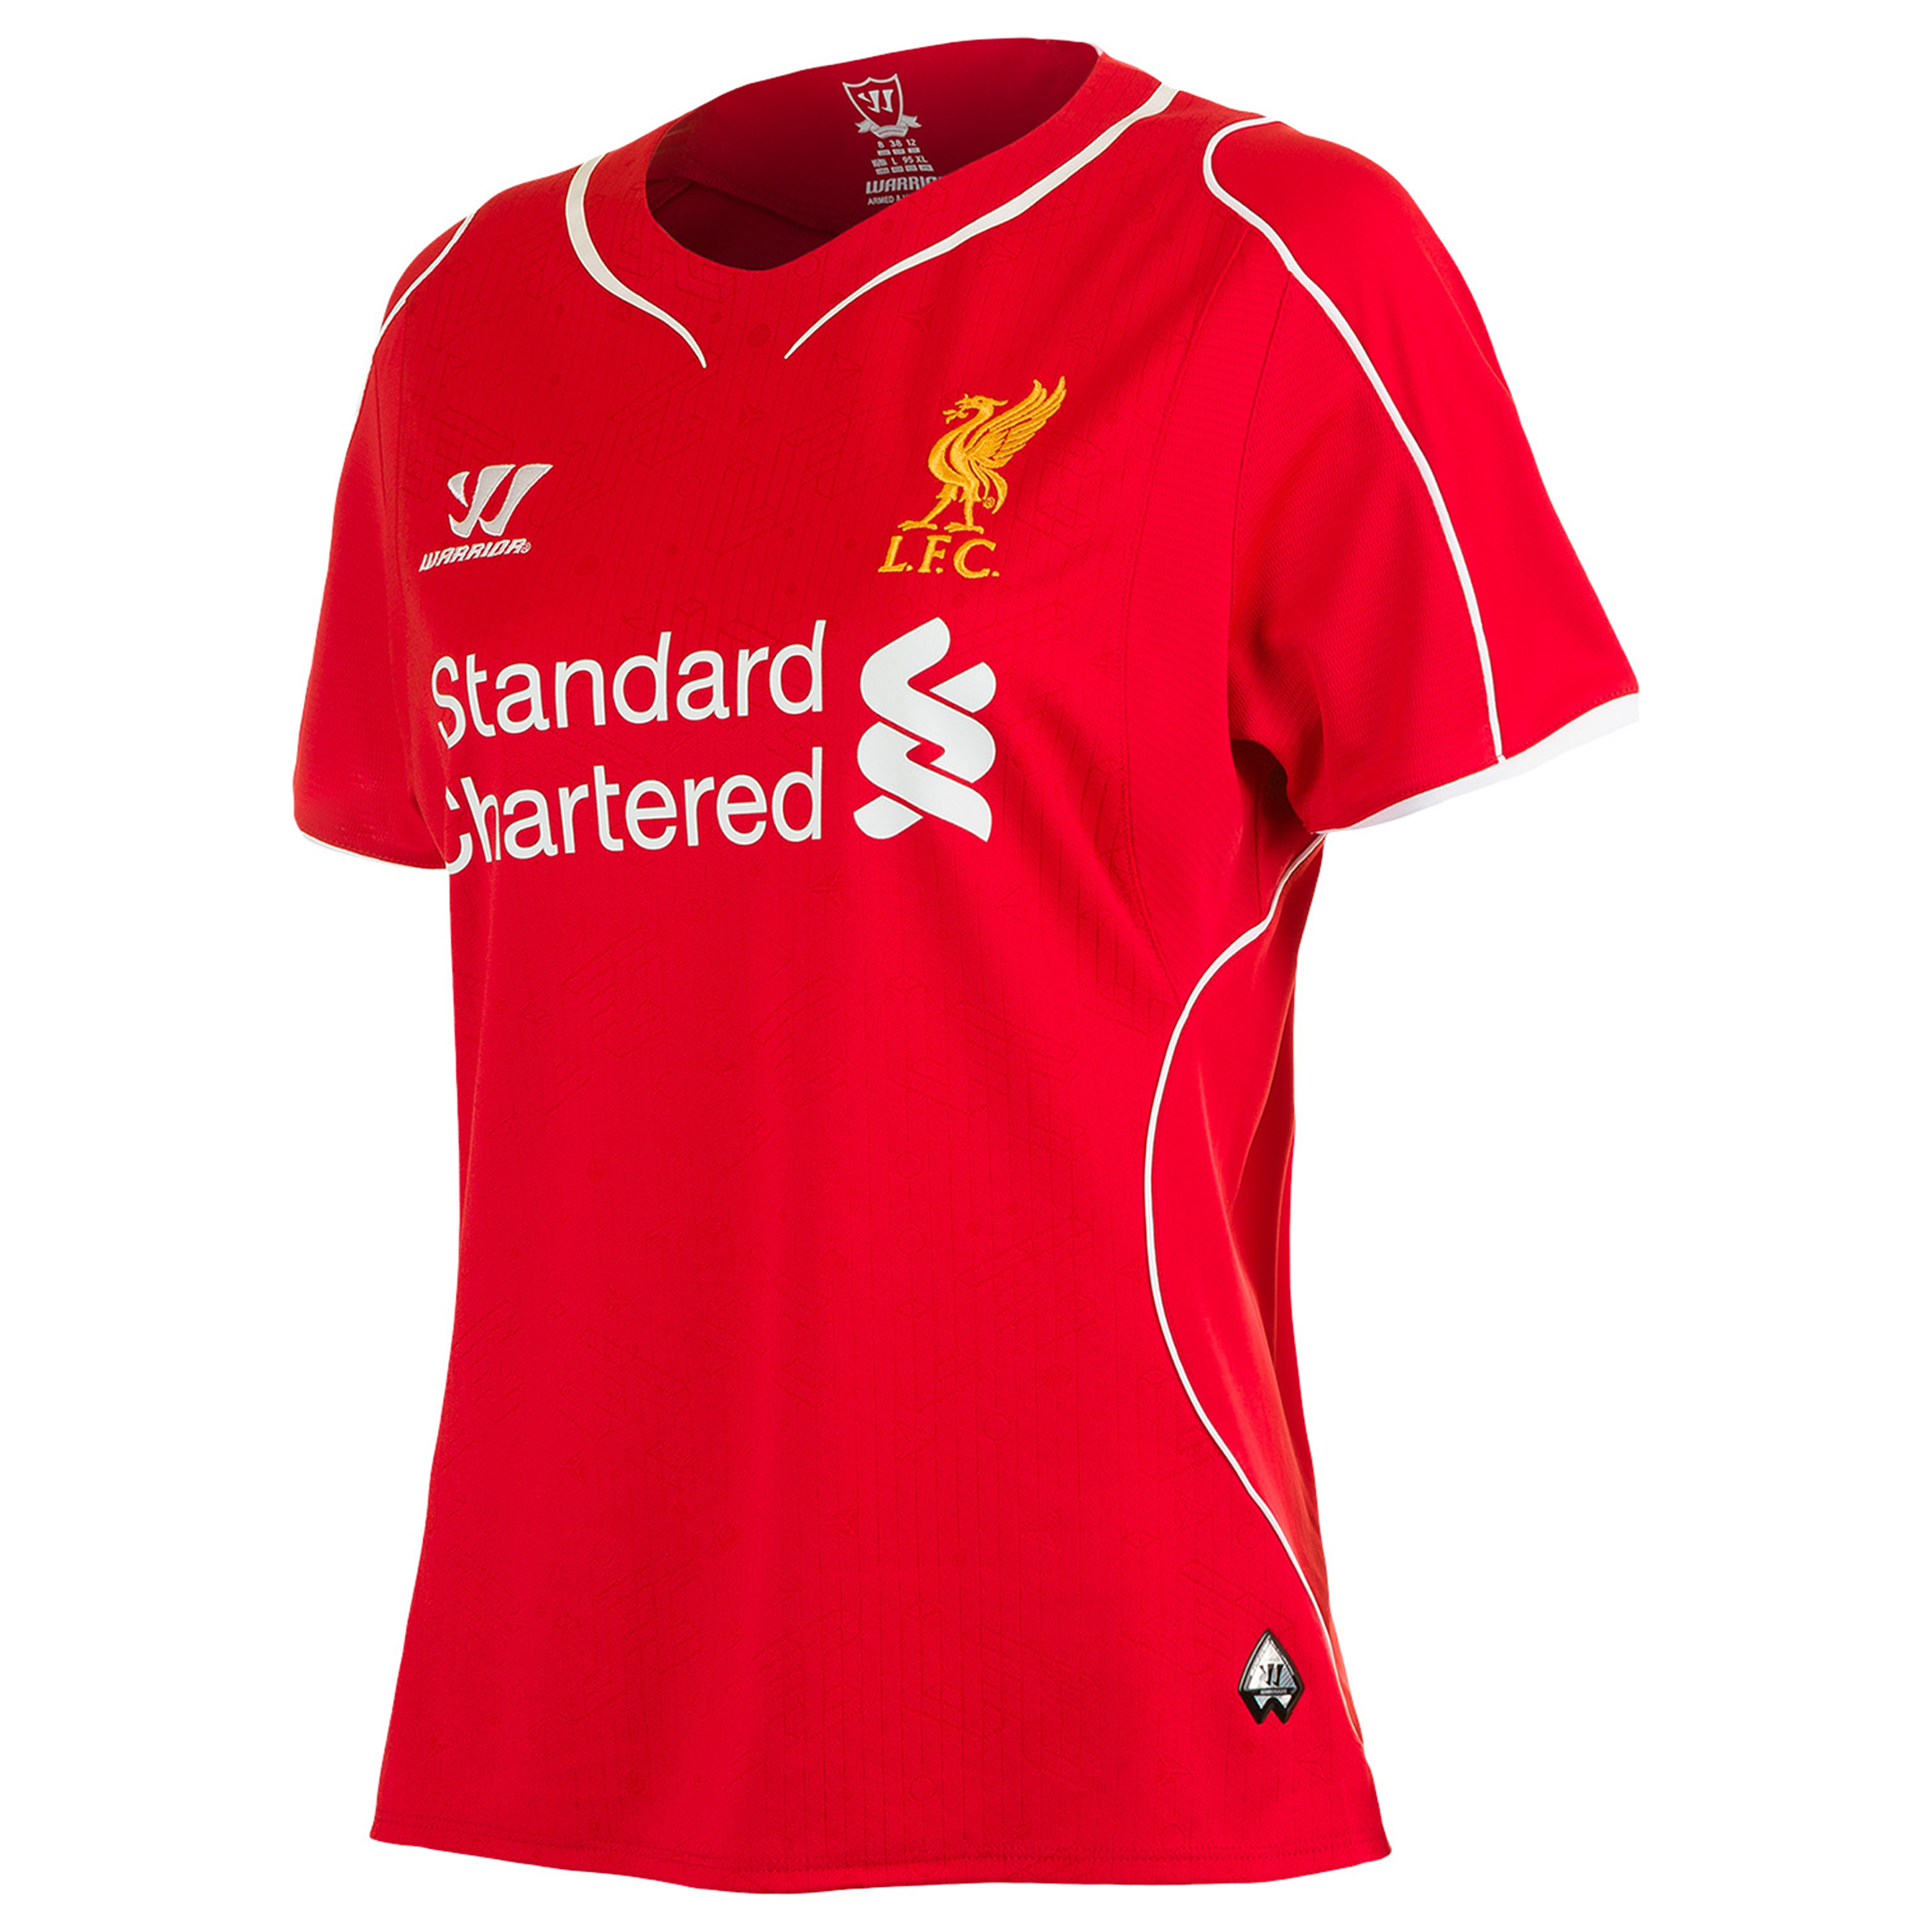 Buy Liverpool Home Kit 2014/15 Womens Red